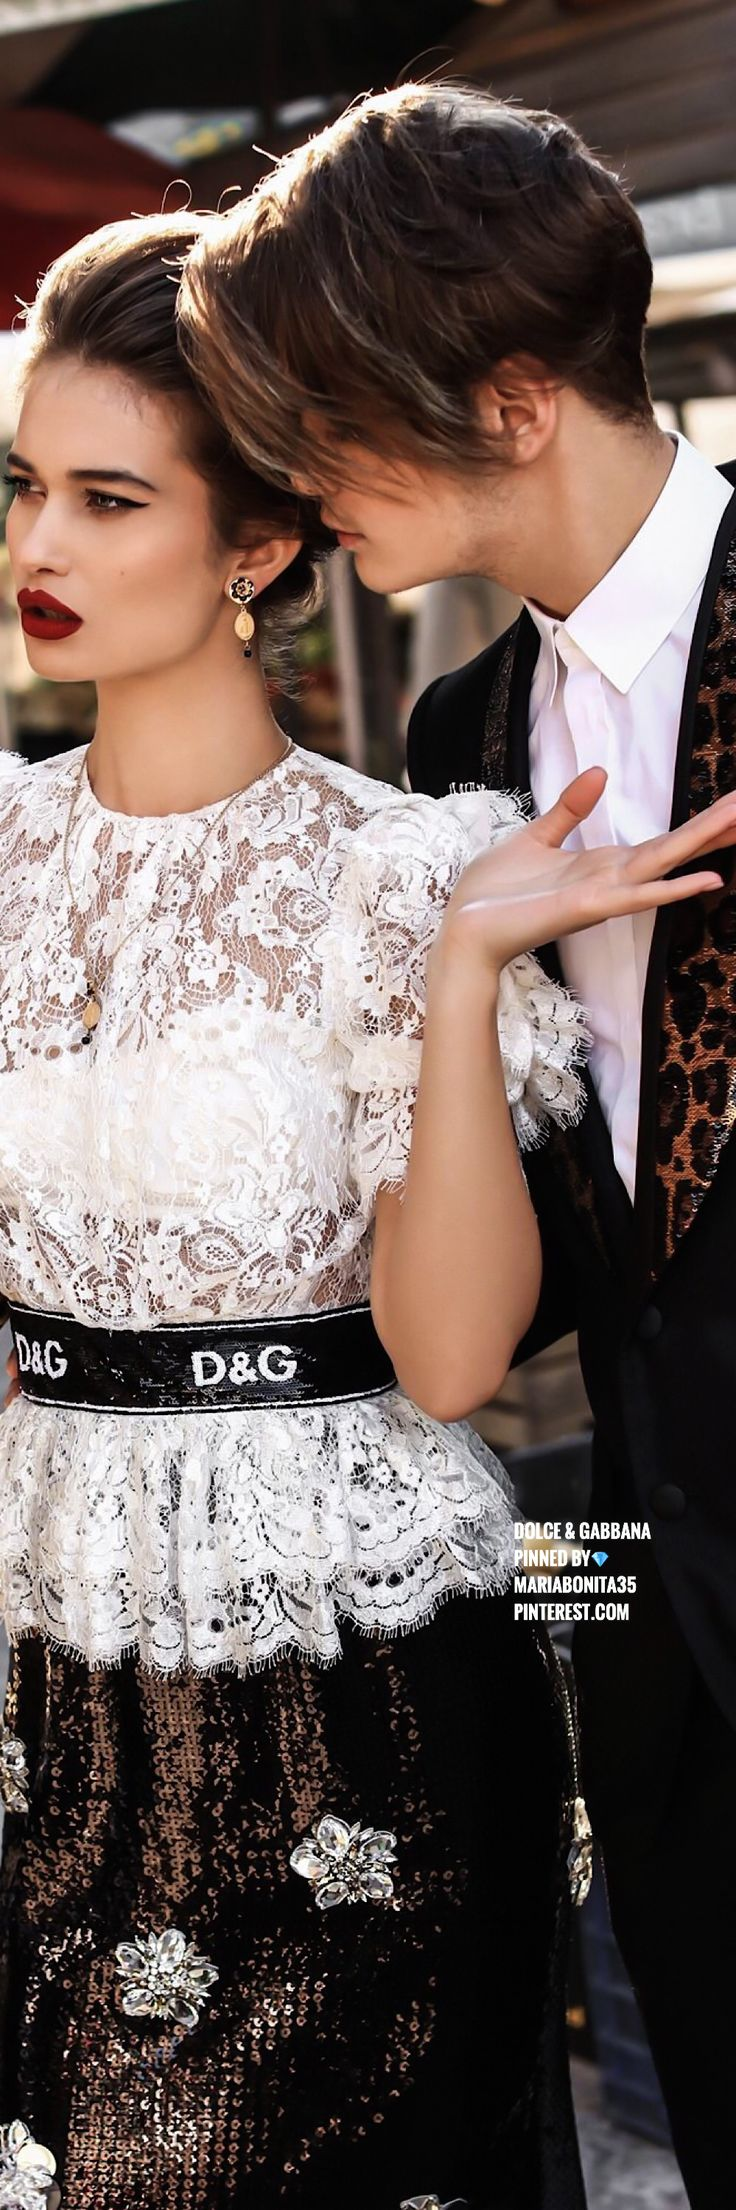 Dolce & Gabbana. QUALITY goes beyond style and fashion. It is respecting others' differences with a mature self confidence, elegance and class, Darling! Said Domenico to Stefano.